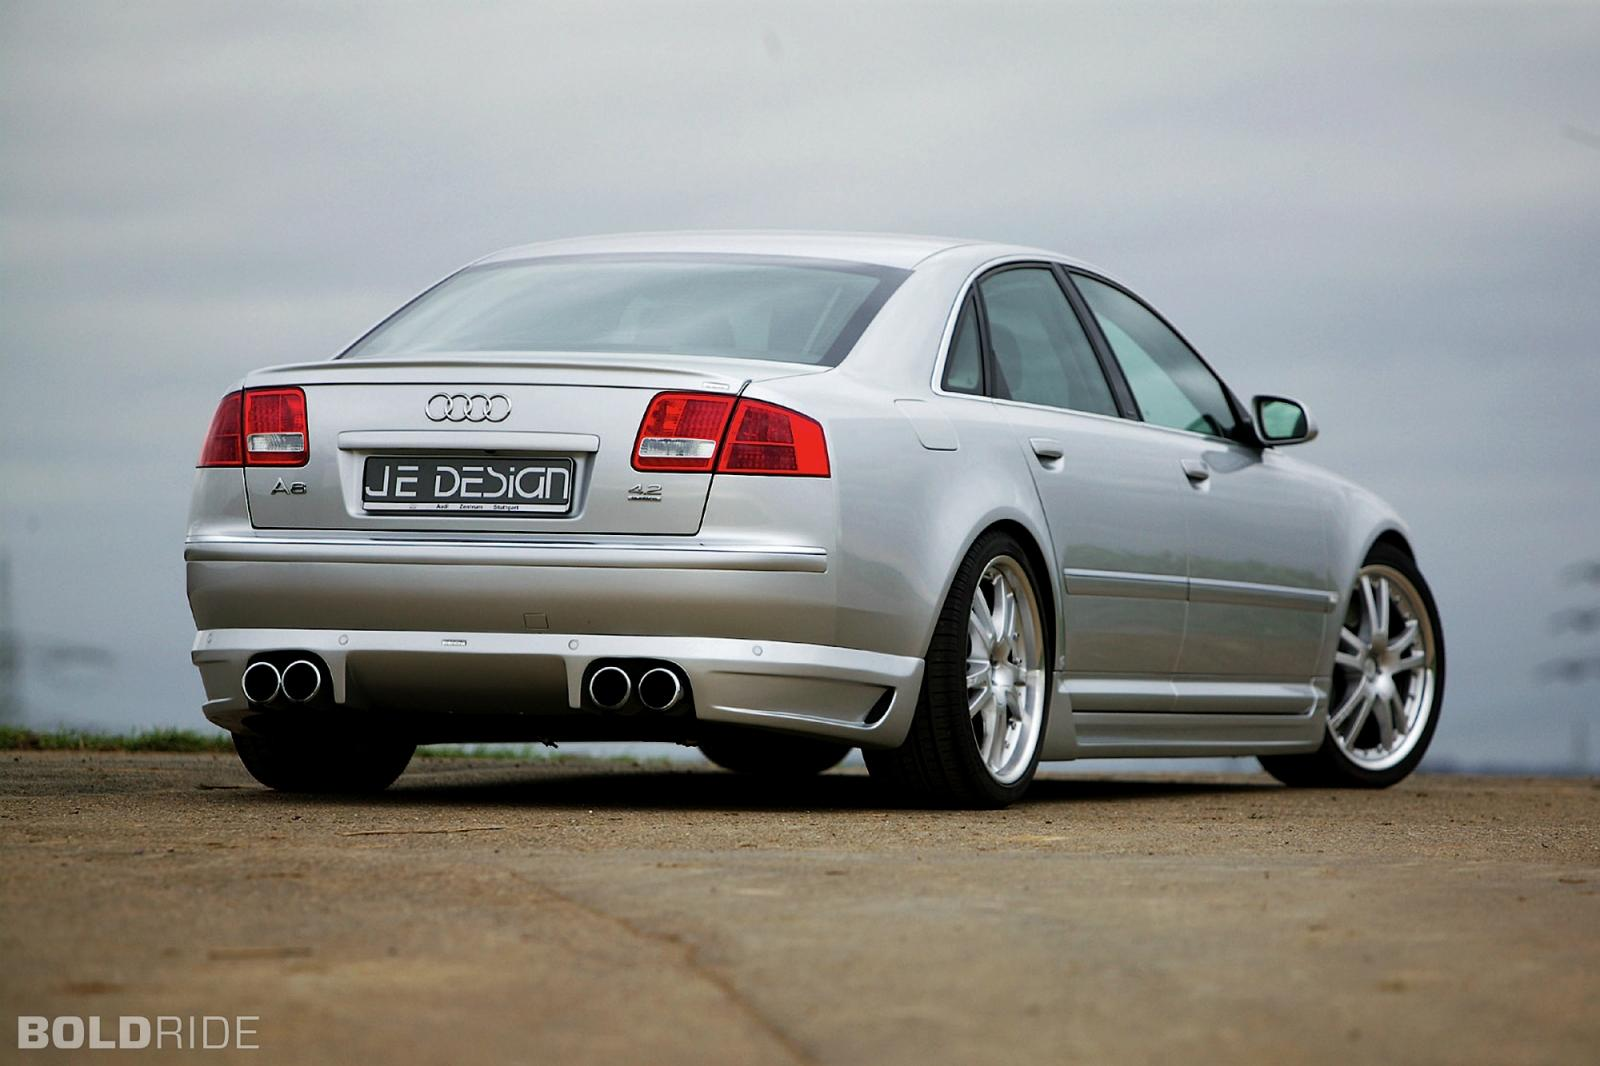 2005 audi a8 information and photos zombiedrive. Black Bedroom Furniture Sets. Home Design Ideas